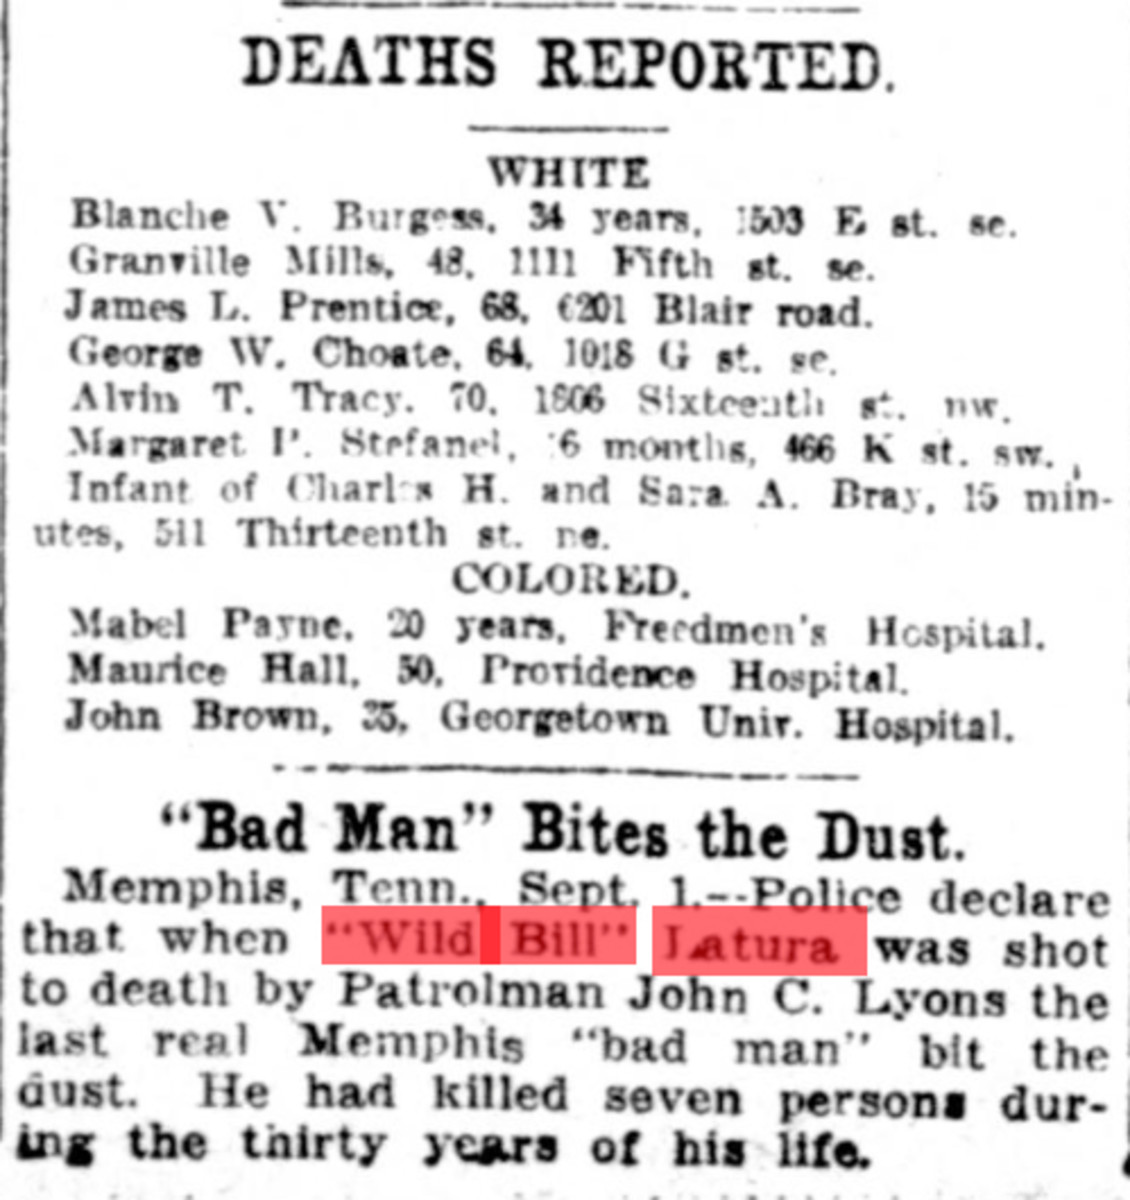 """Wild Bill"" Latura was considered to be the last real Memphis ""bad man""."